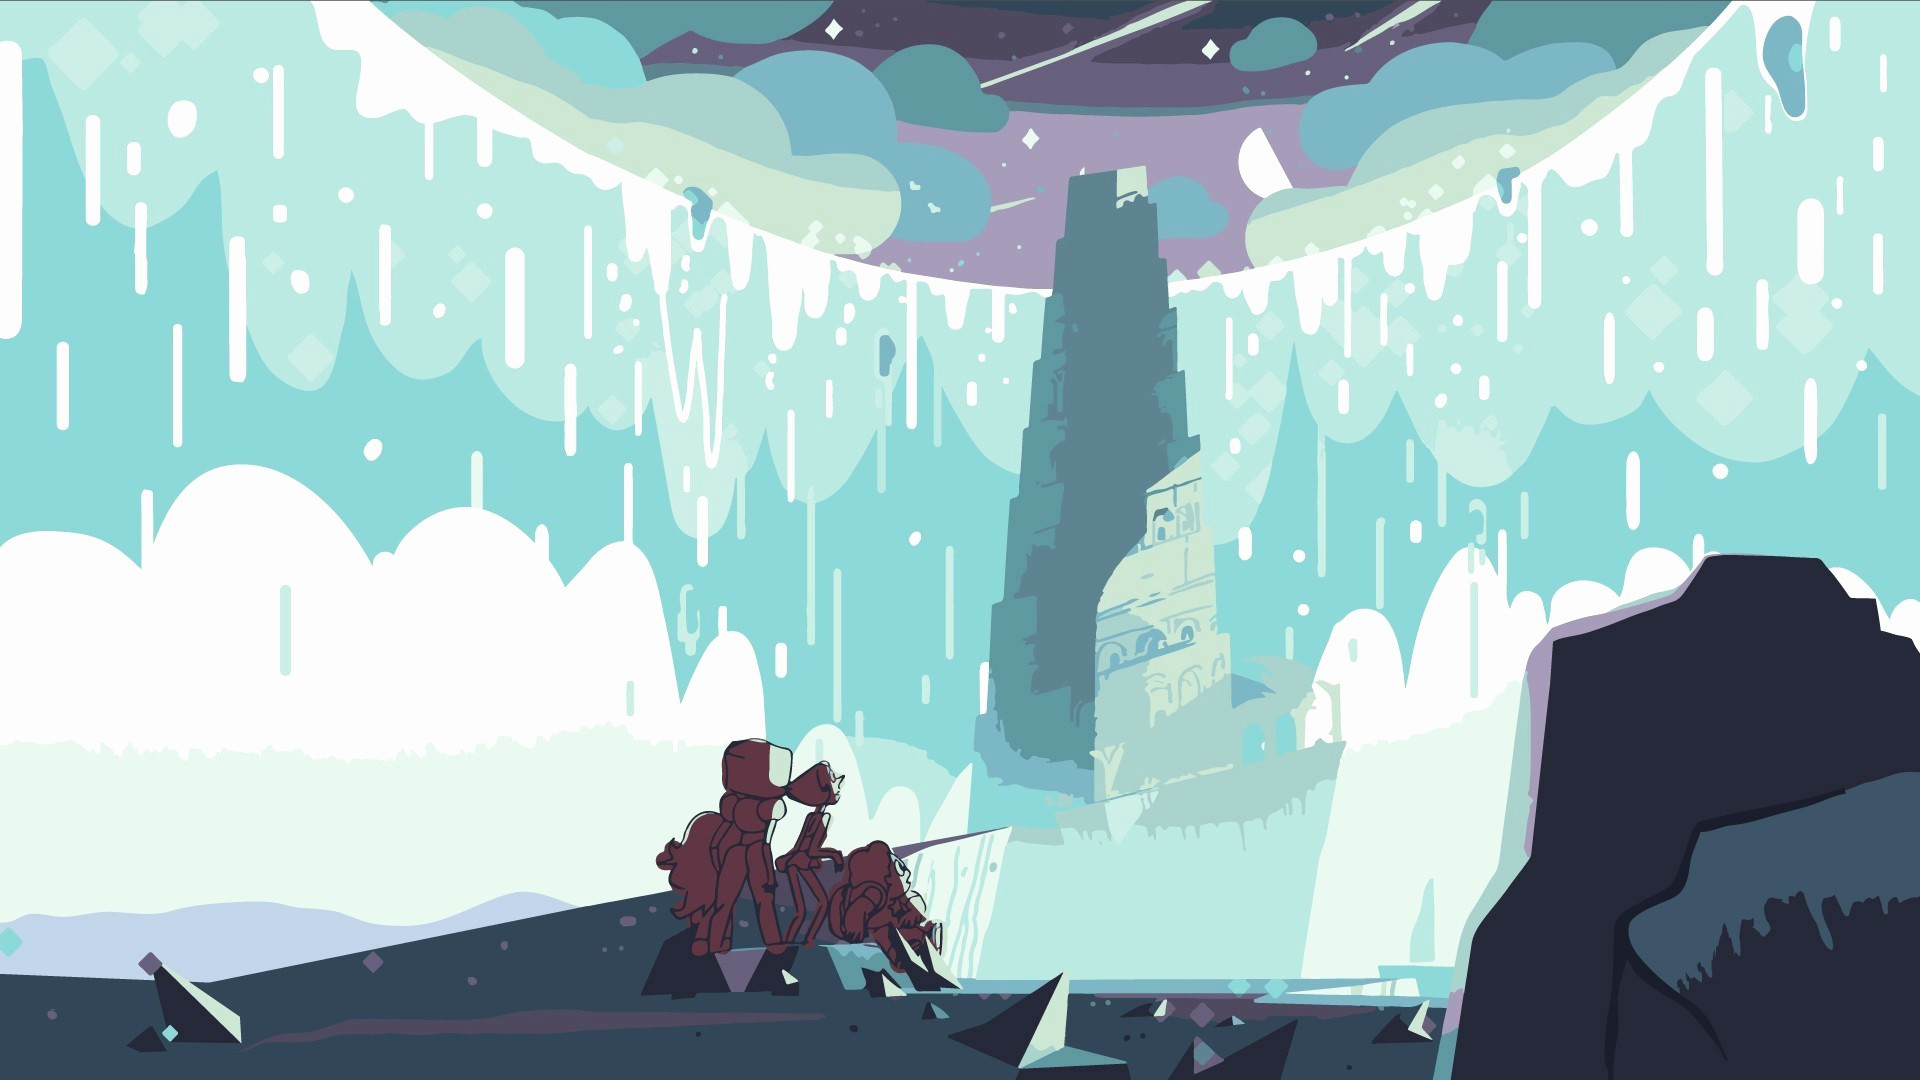 1920x1080 HQFX Images Collection Steven Universe Wallpaper 1366x768 By Holley Kristensen